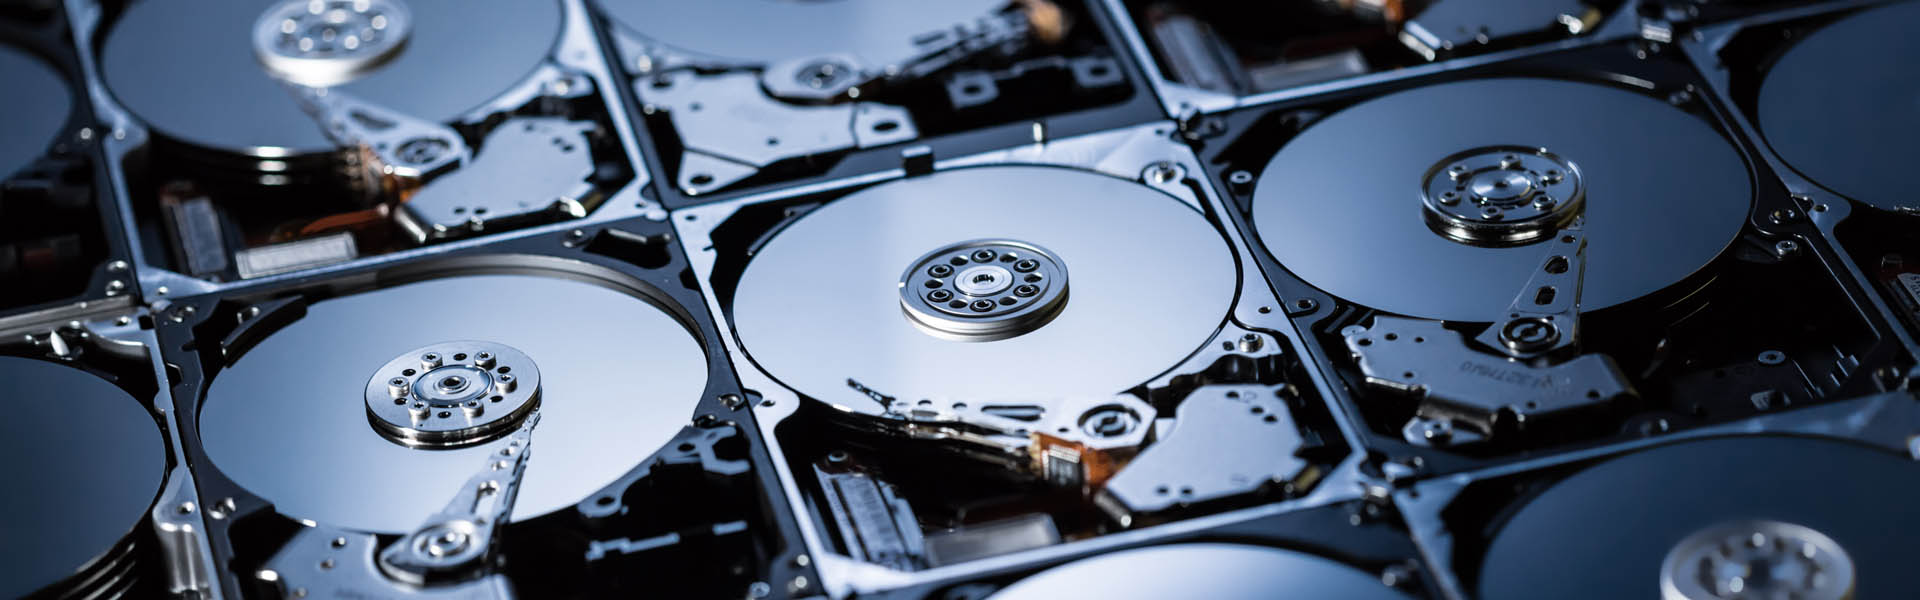 Best Hard Drive For Gaming 2019 – Ultimate HDD Buying Guide